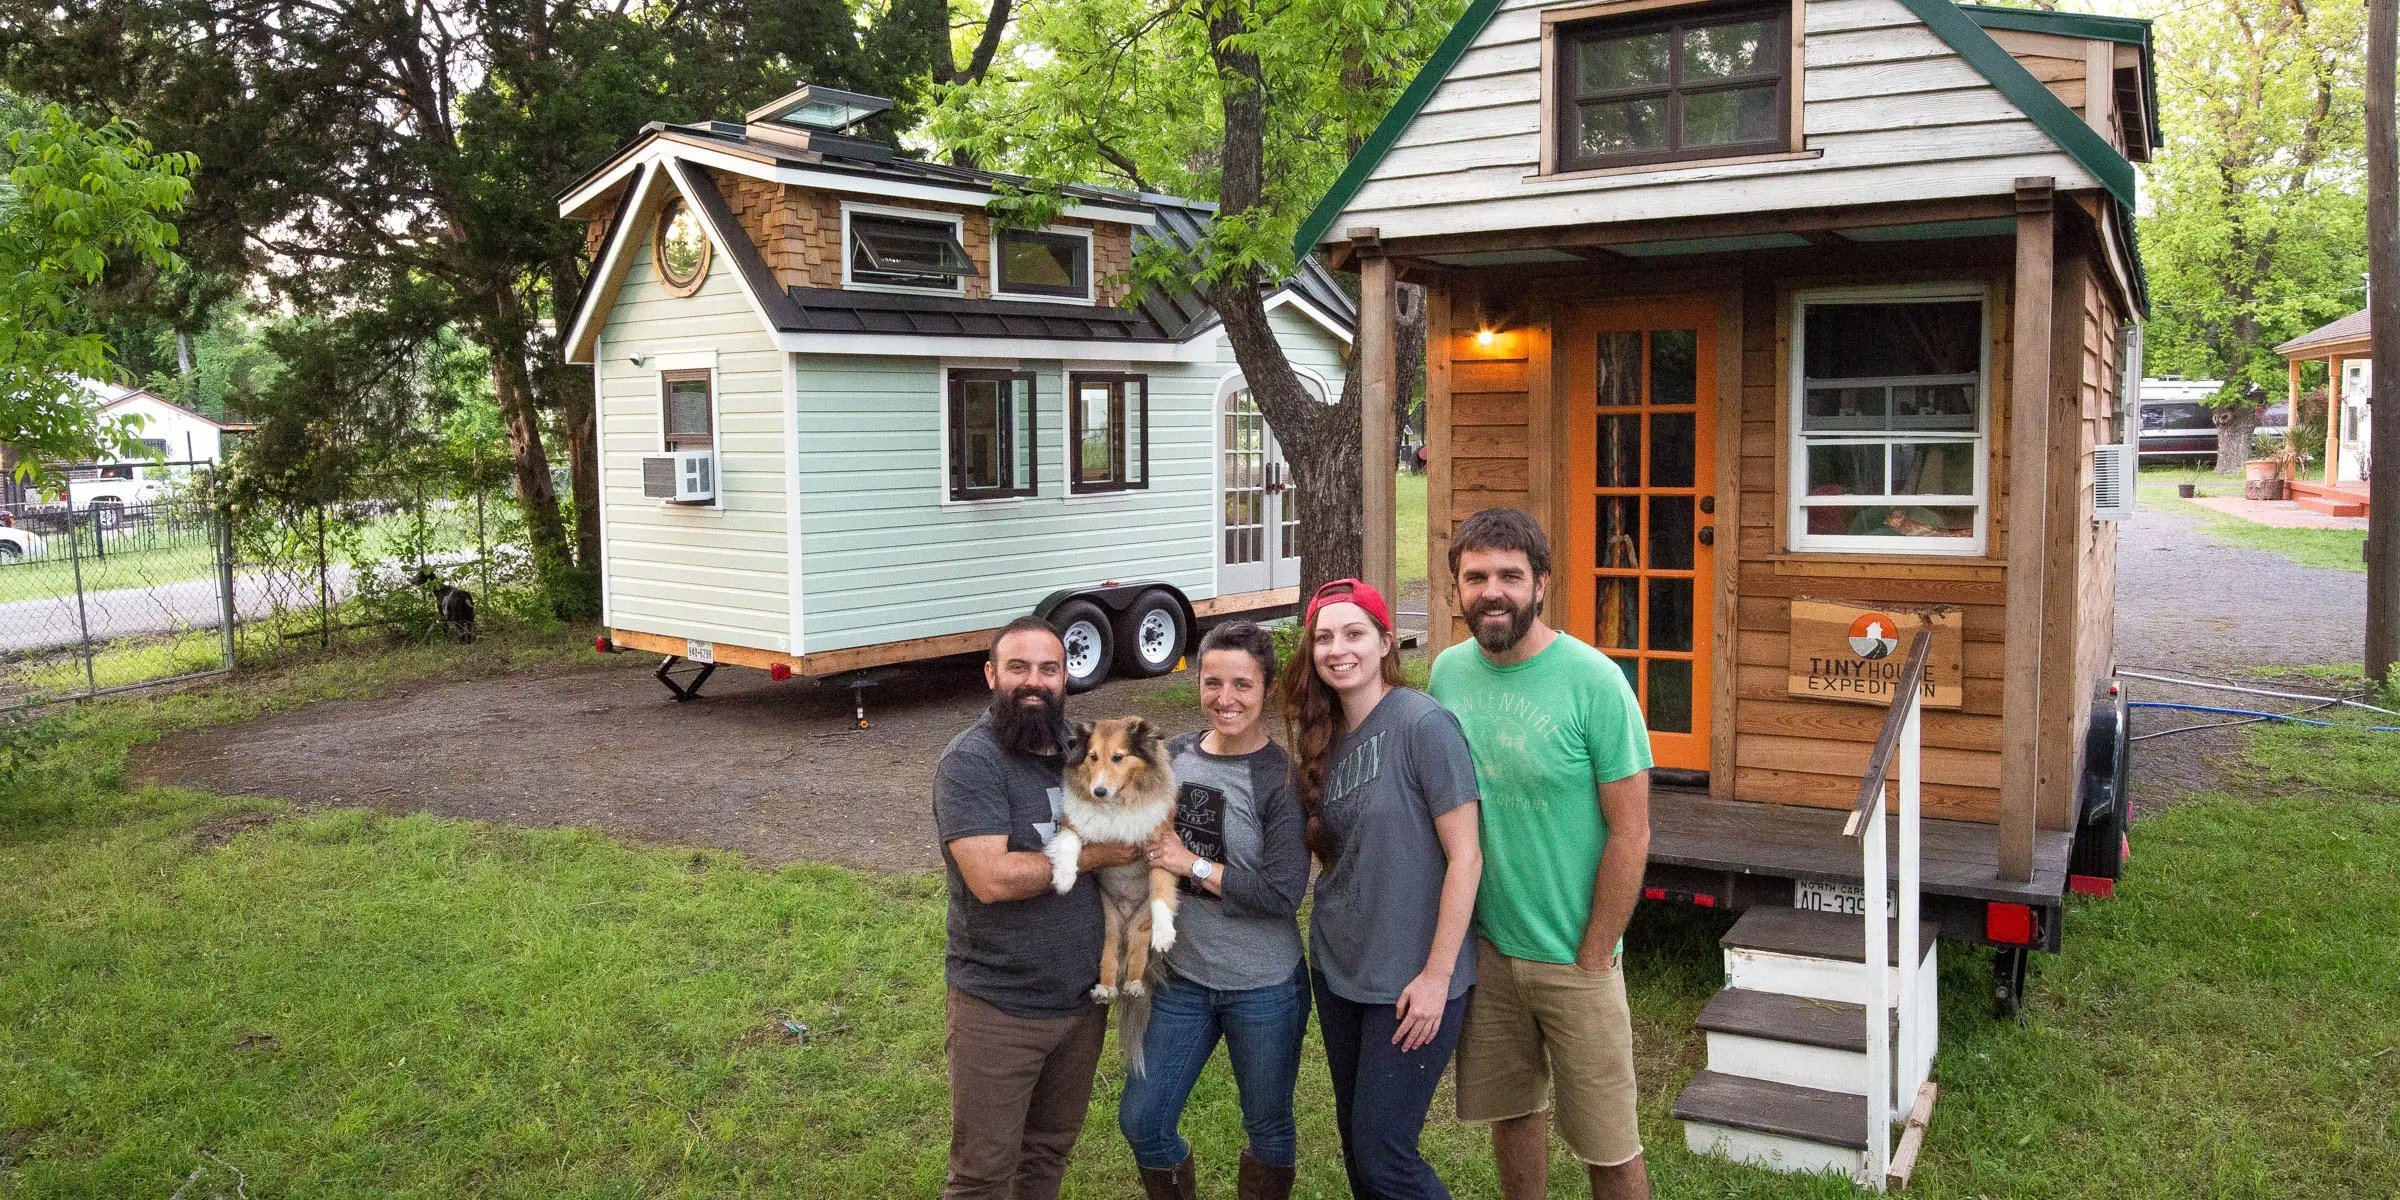 They've already towed their tiny home through 16 states. The couple saves money on campsites by parking alongside their film subjects.